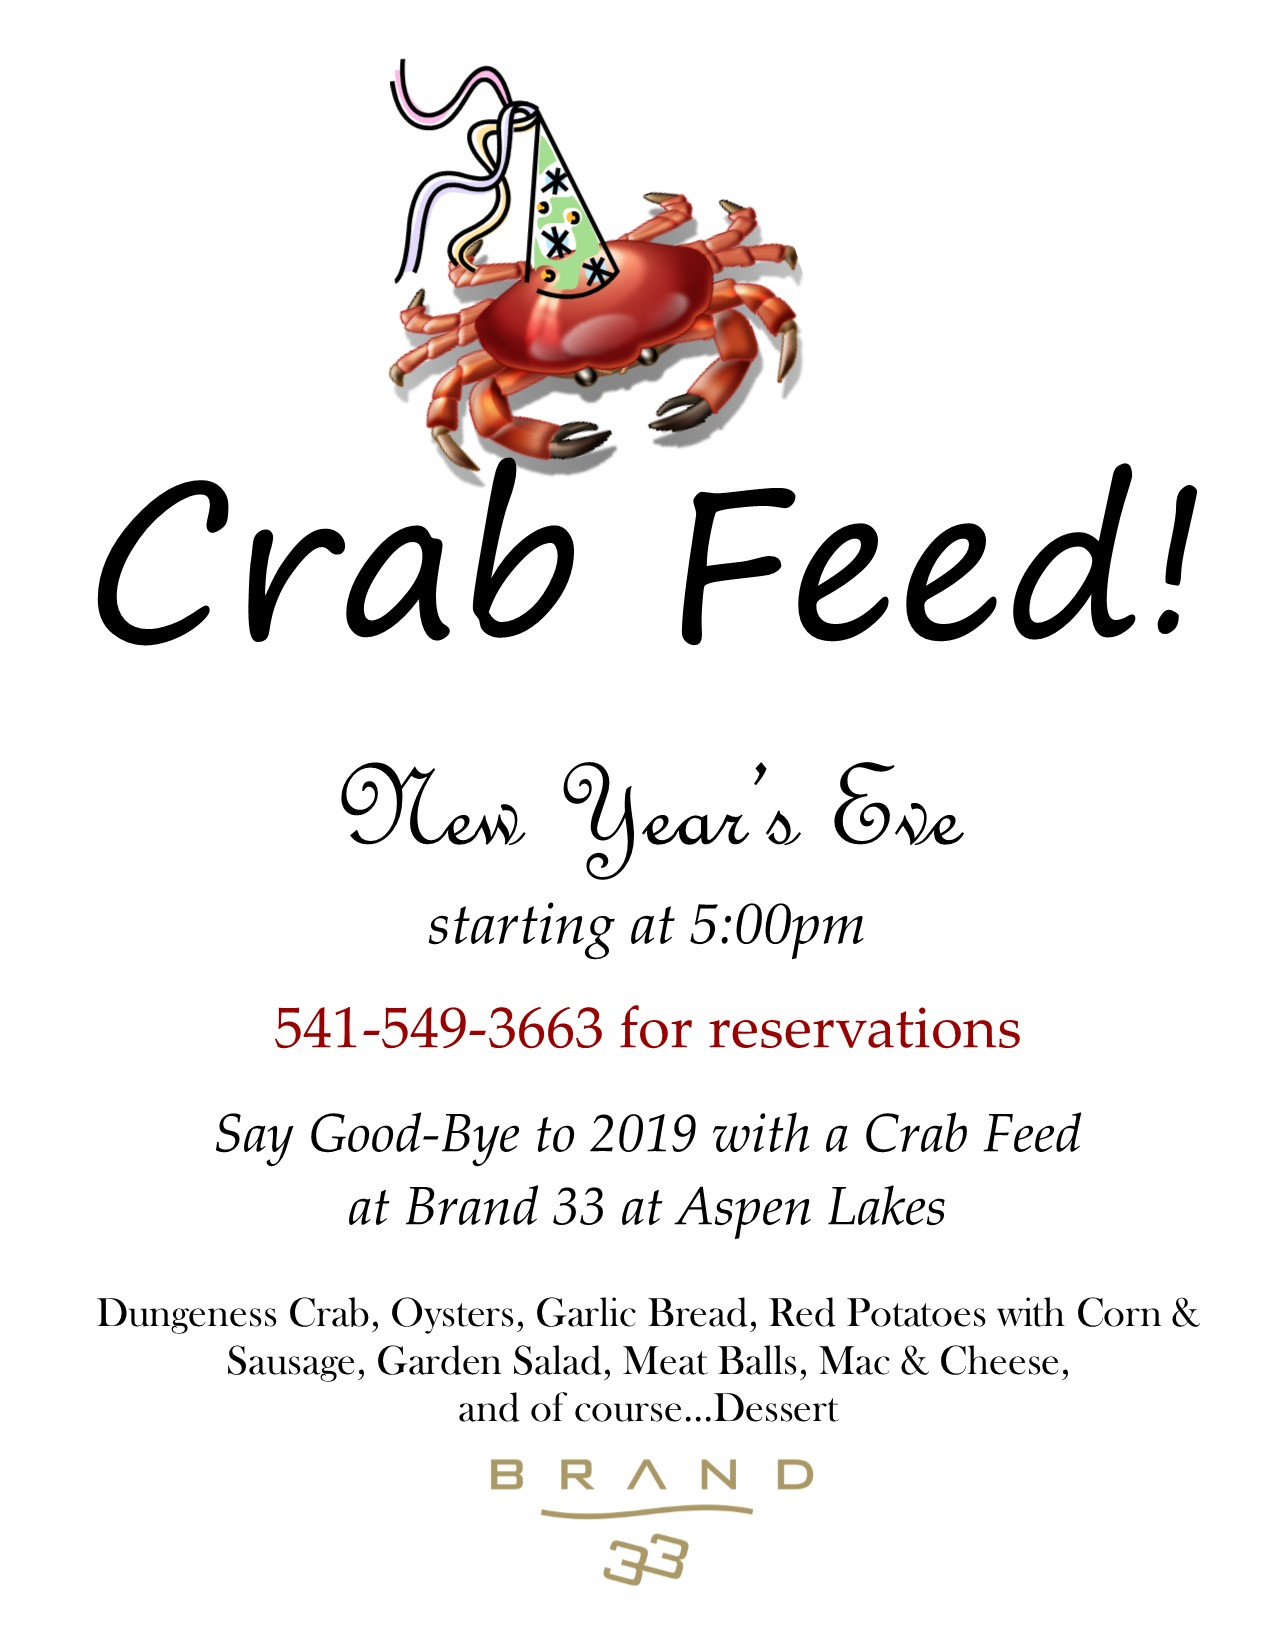 Crab Feed 12 31 19